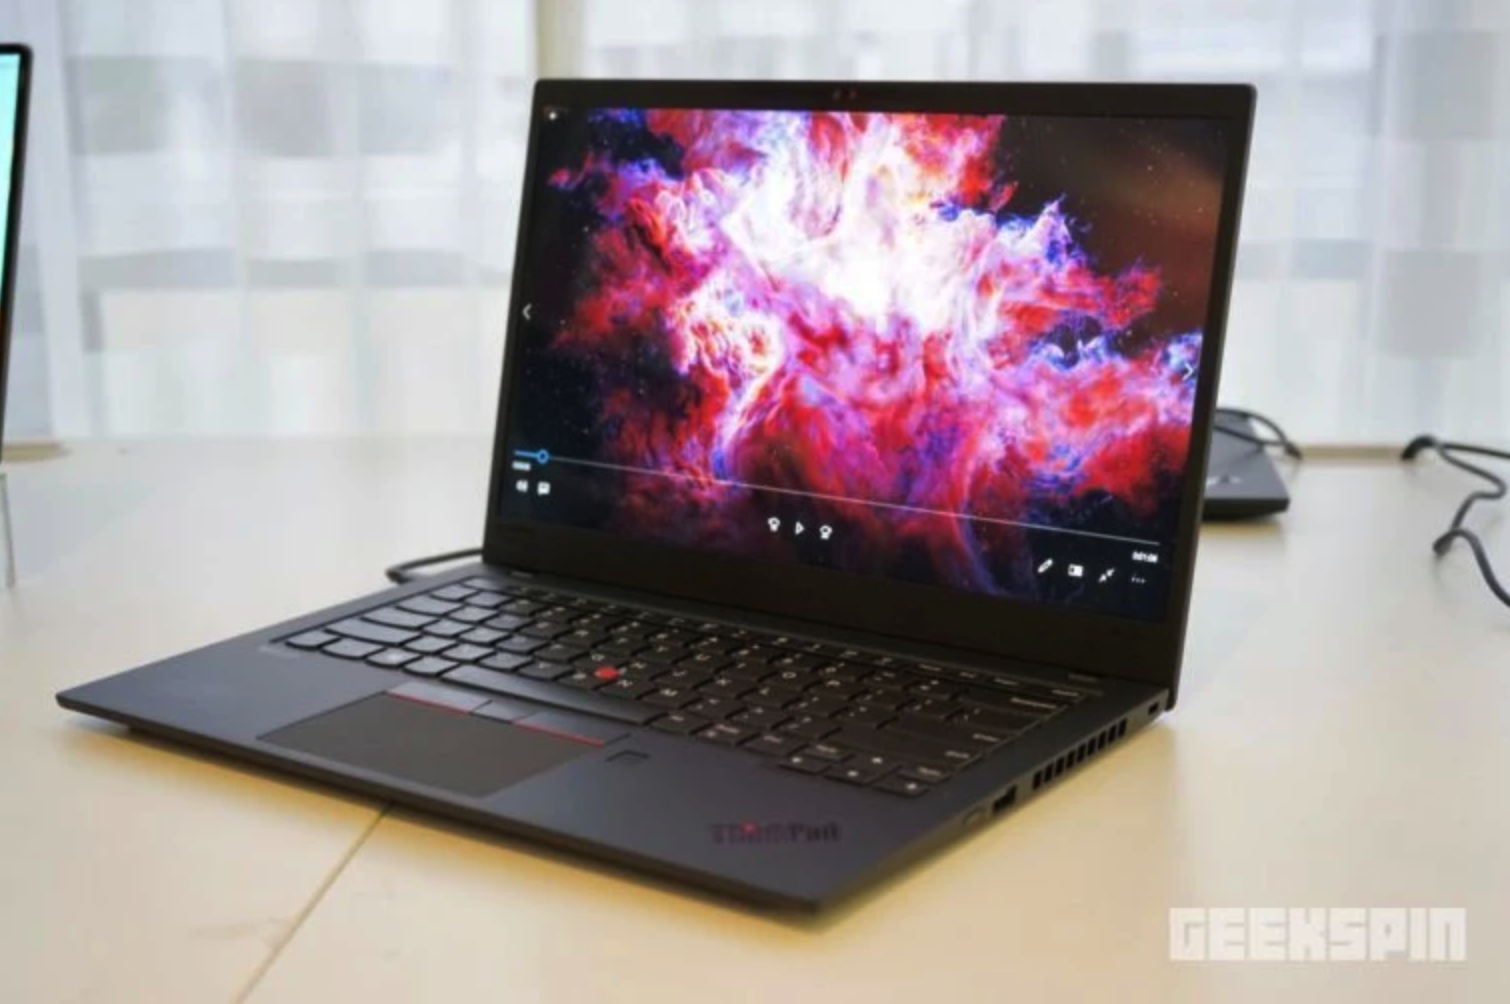 Win a Lenovo ThinkPad X1 Carbon (7th gen) laptop!